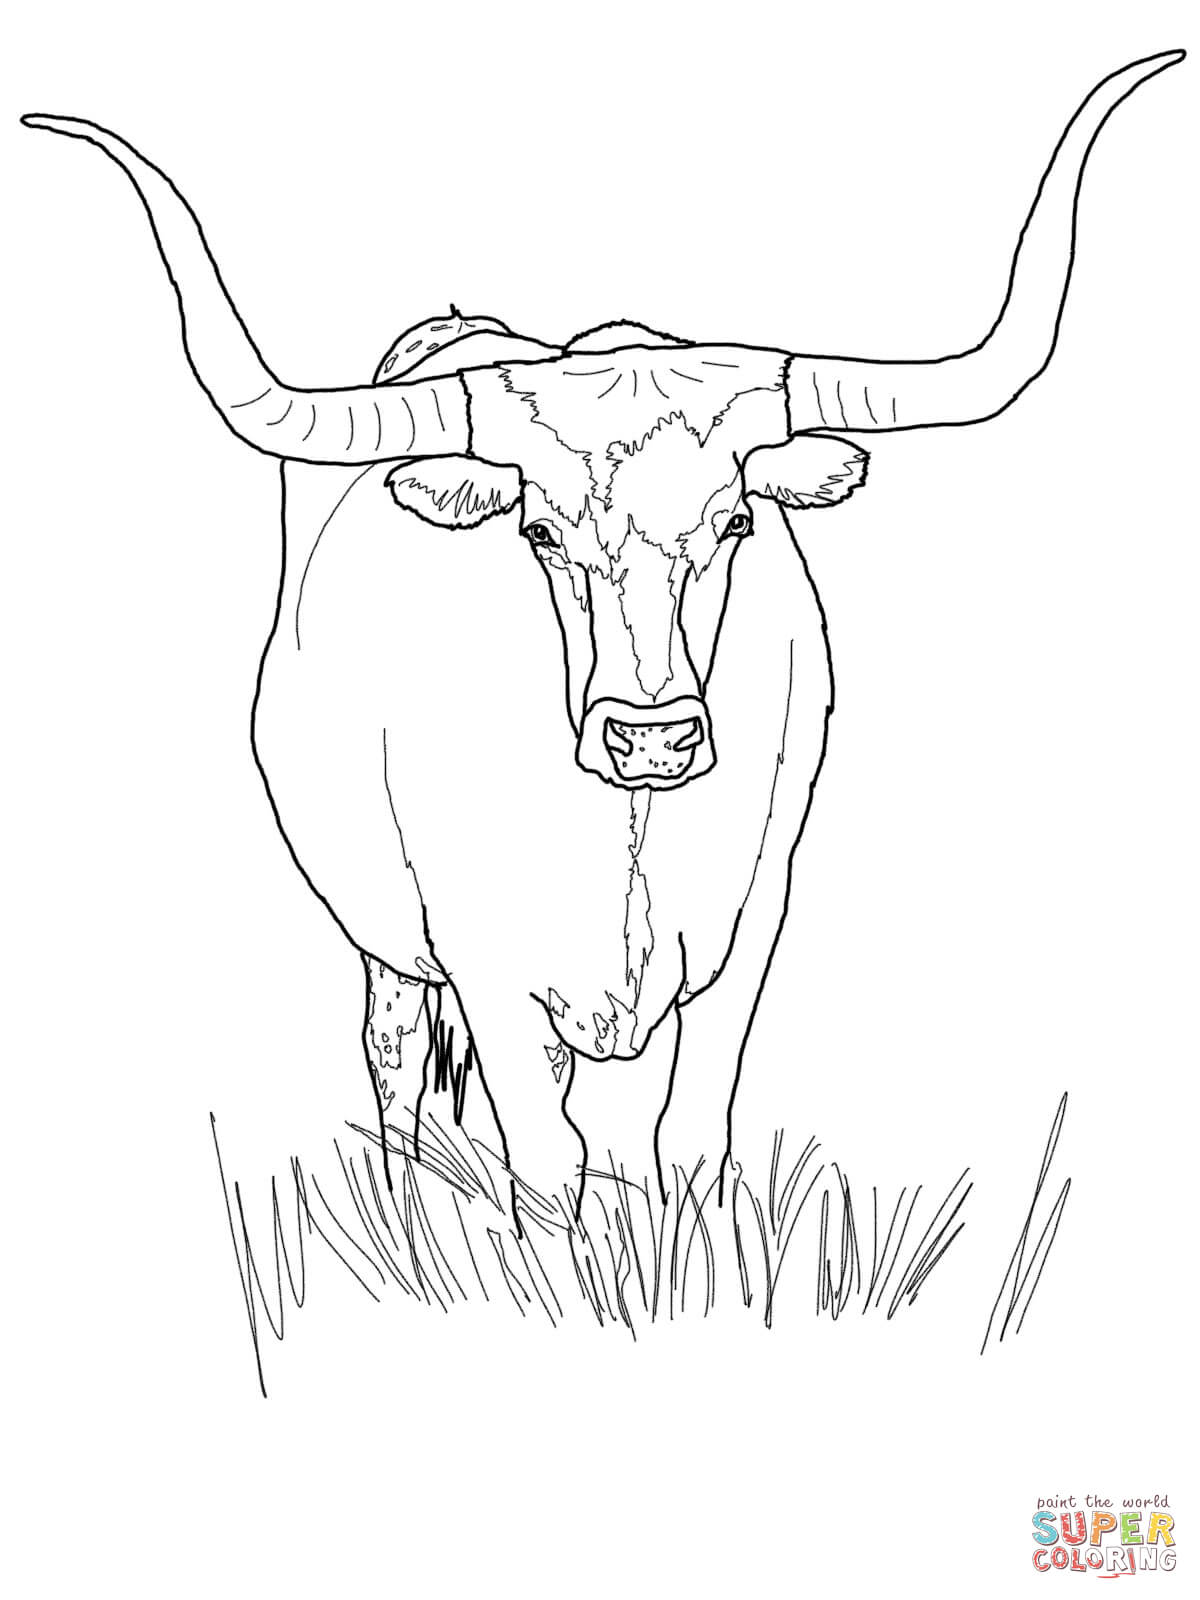 Longhorn Cattle Drawing at GetDrawings.com | Free for personal use ...